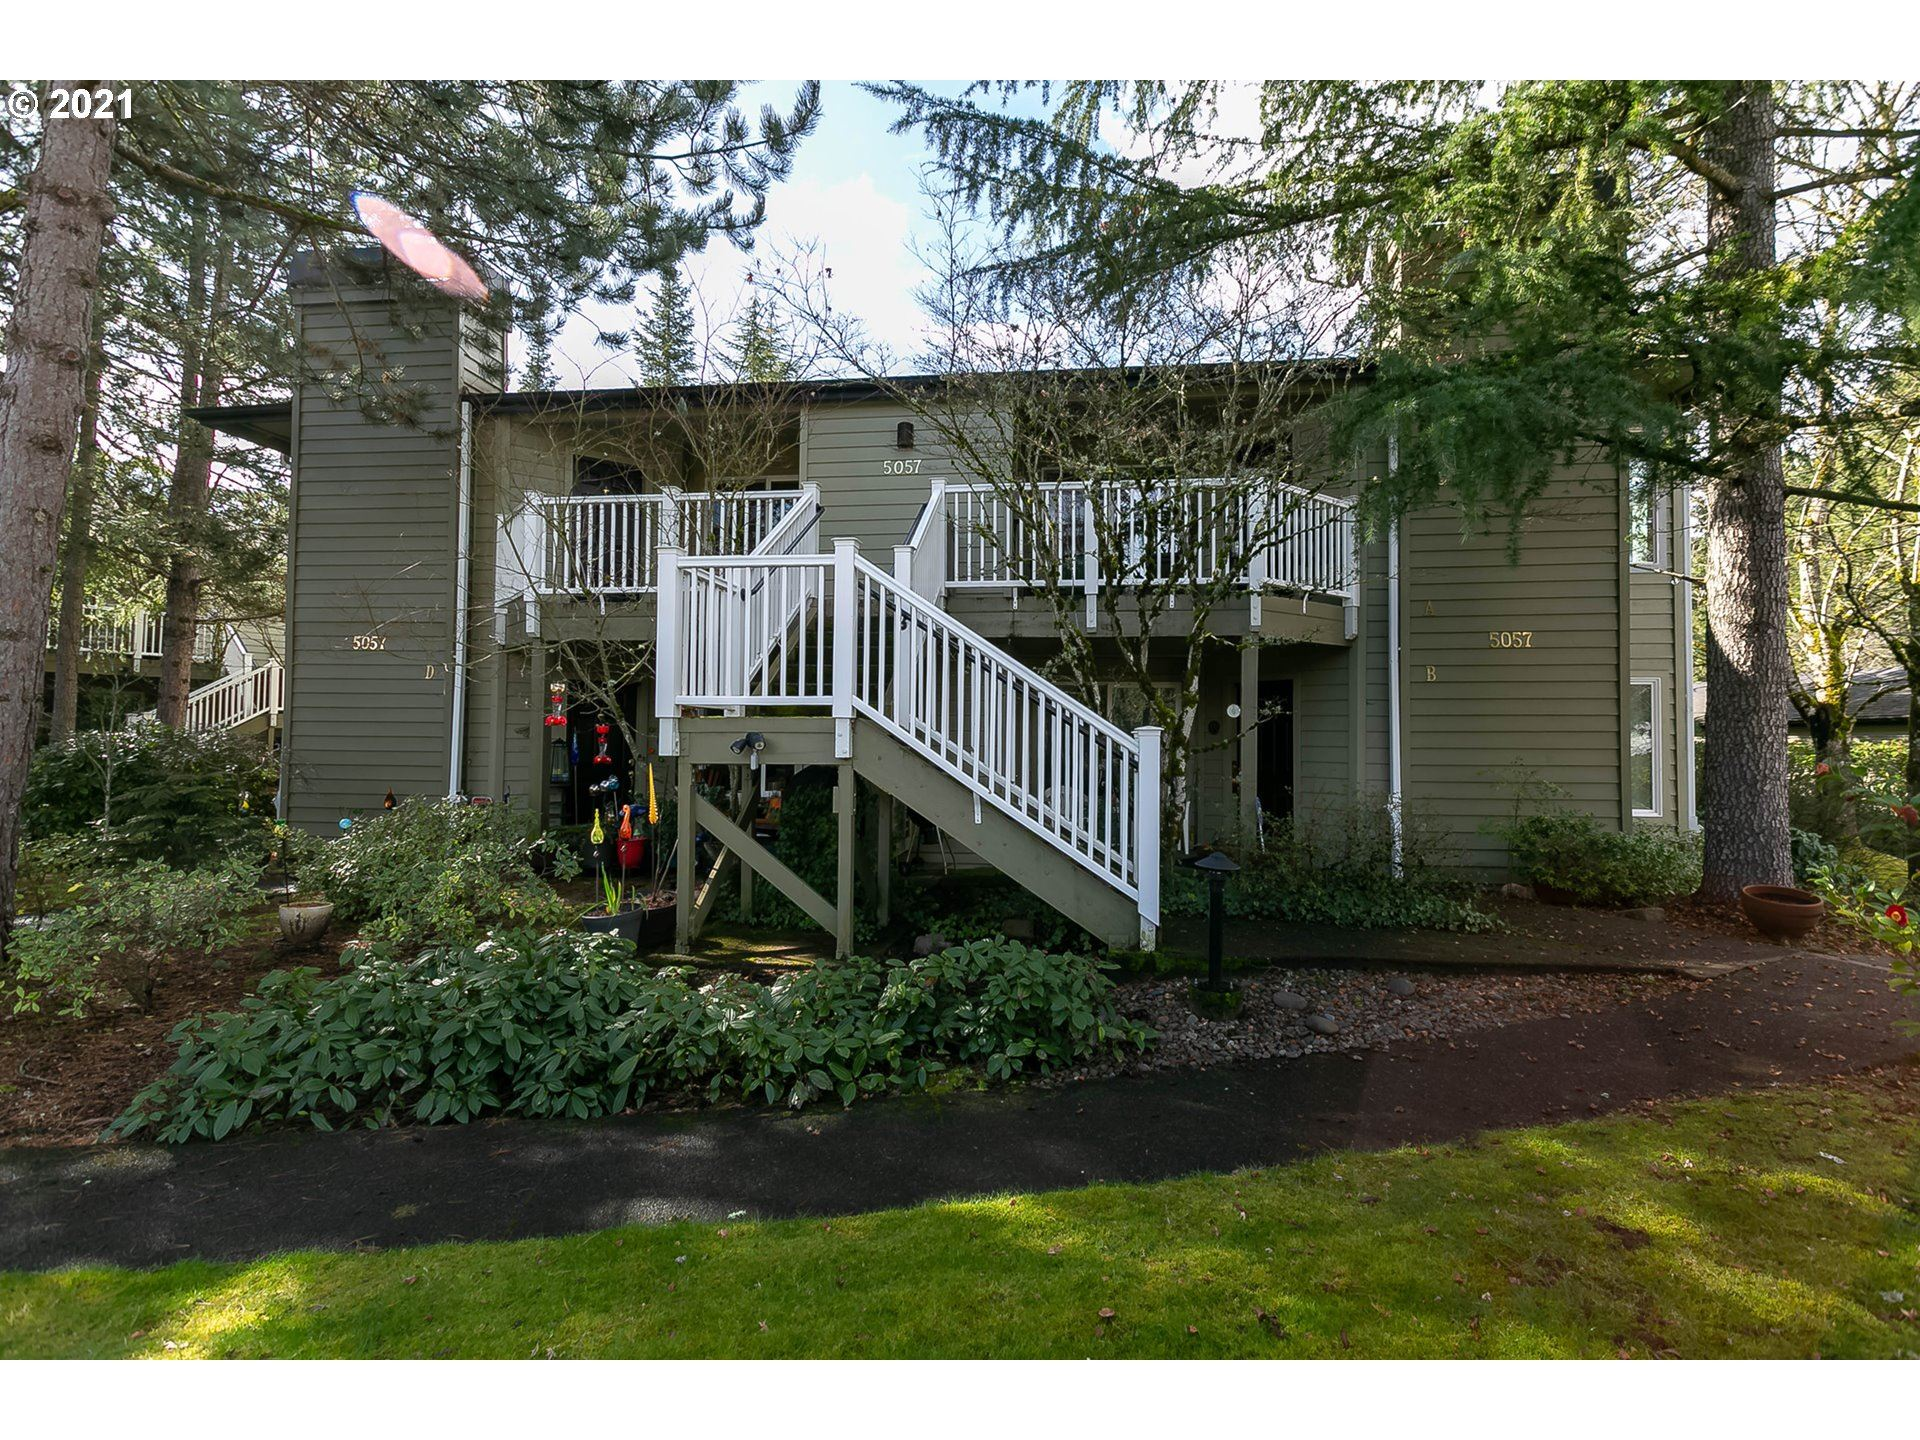 Photo for 5057 FOOTHILLS DR, Lake Oswego, OR 97034 (MLS # 21575647)